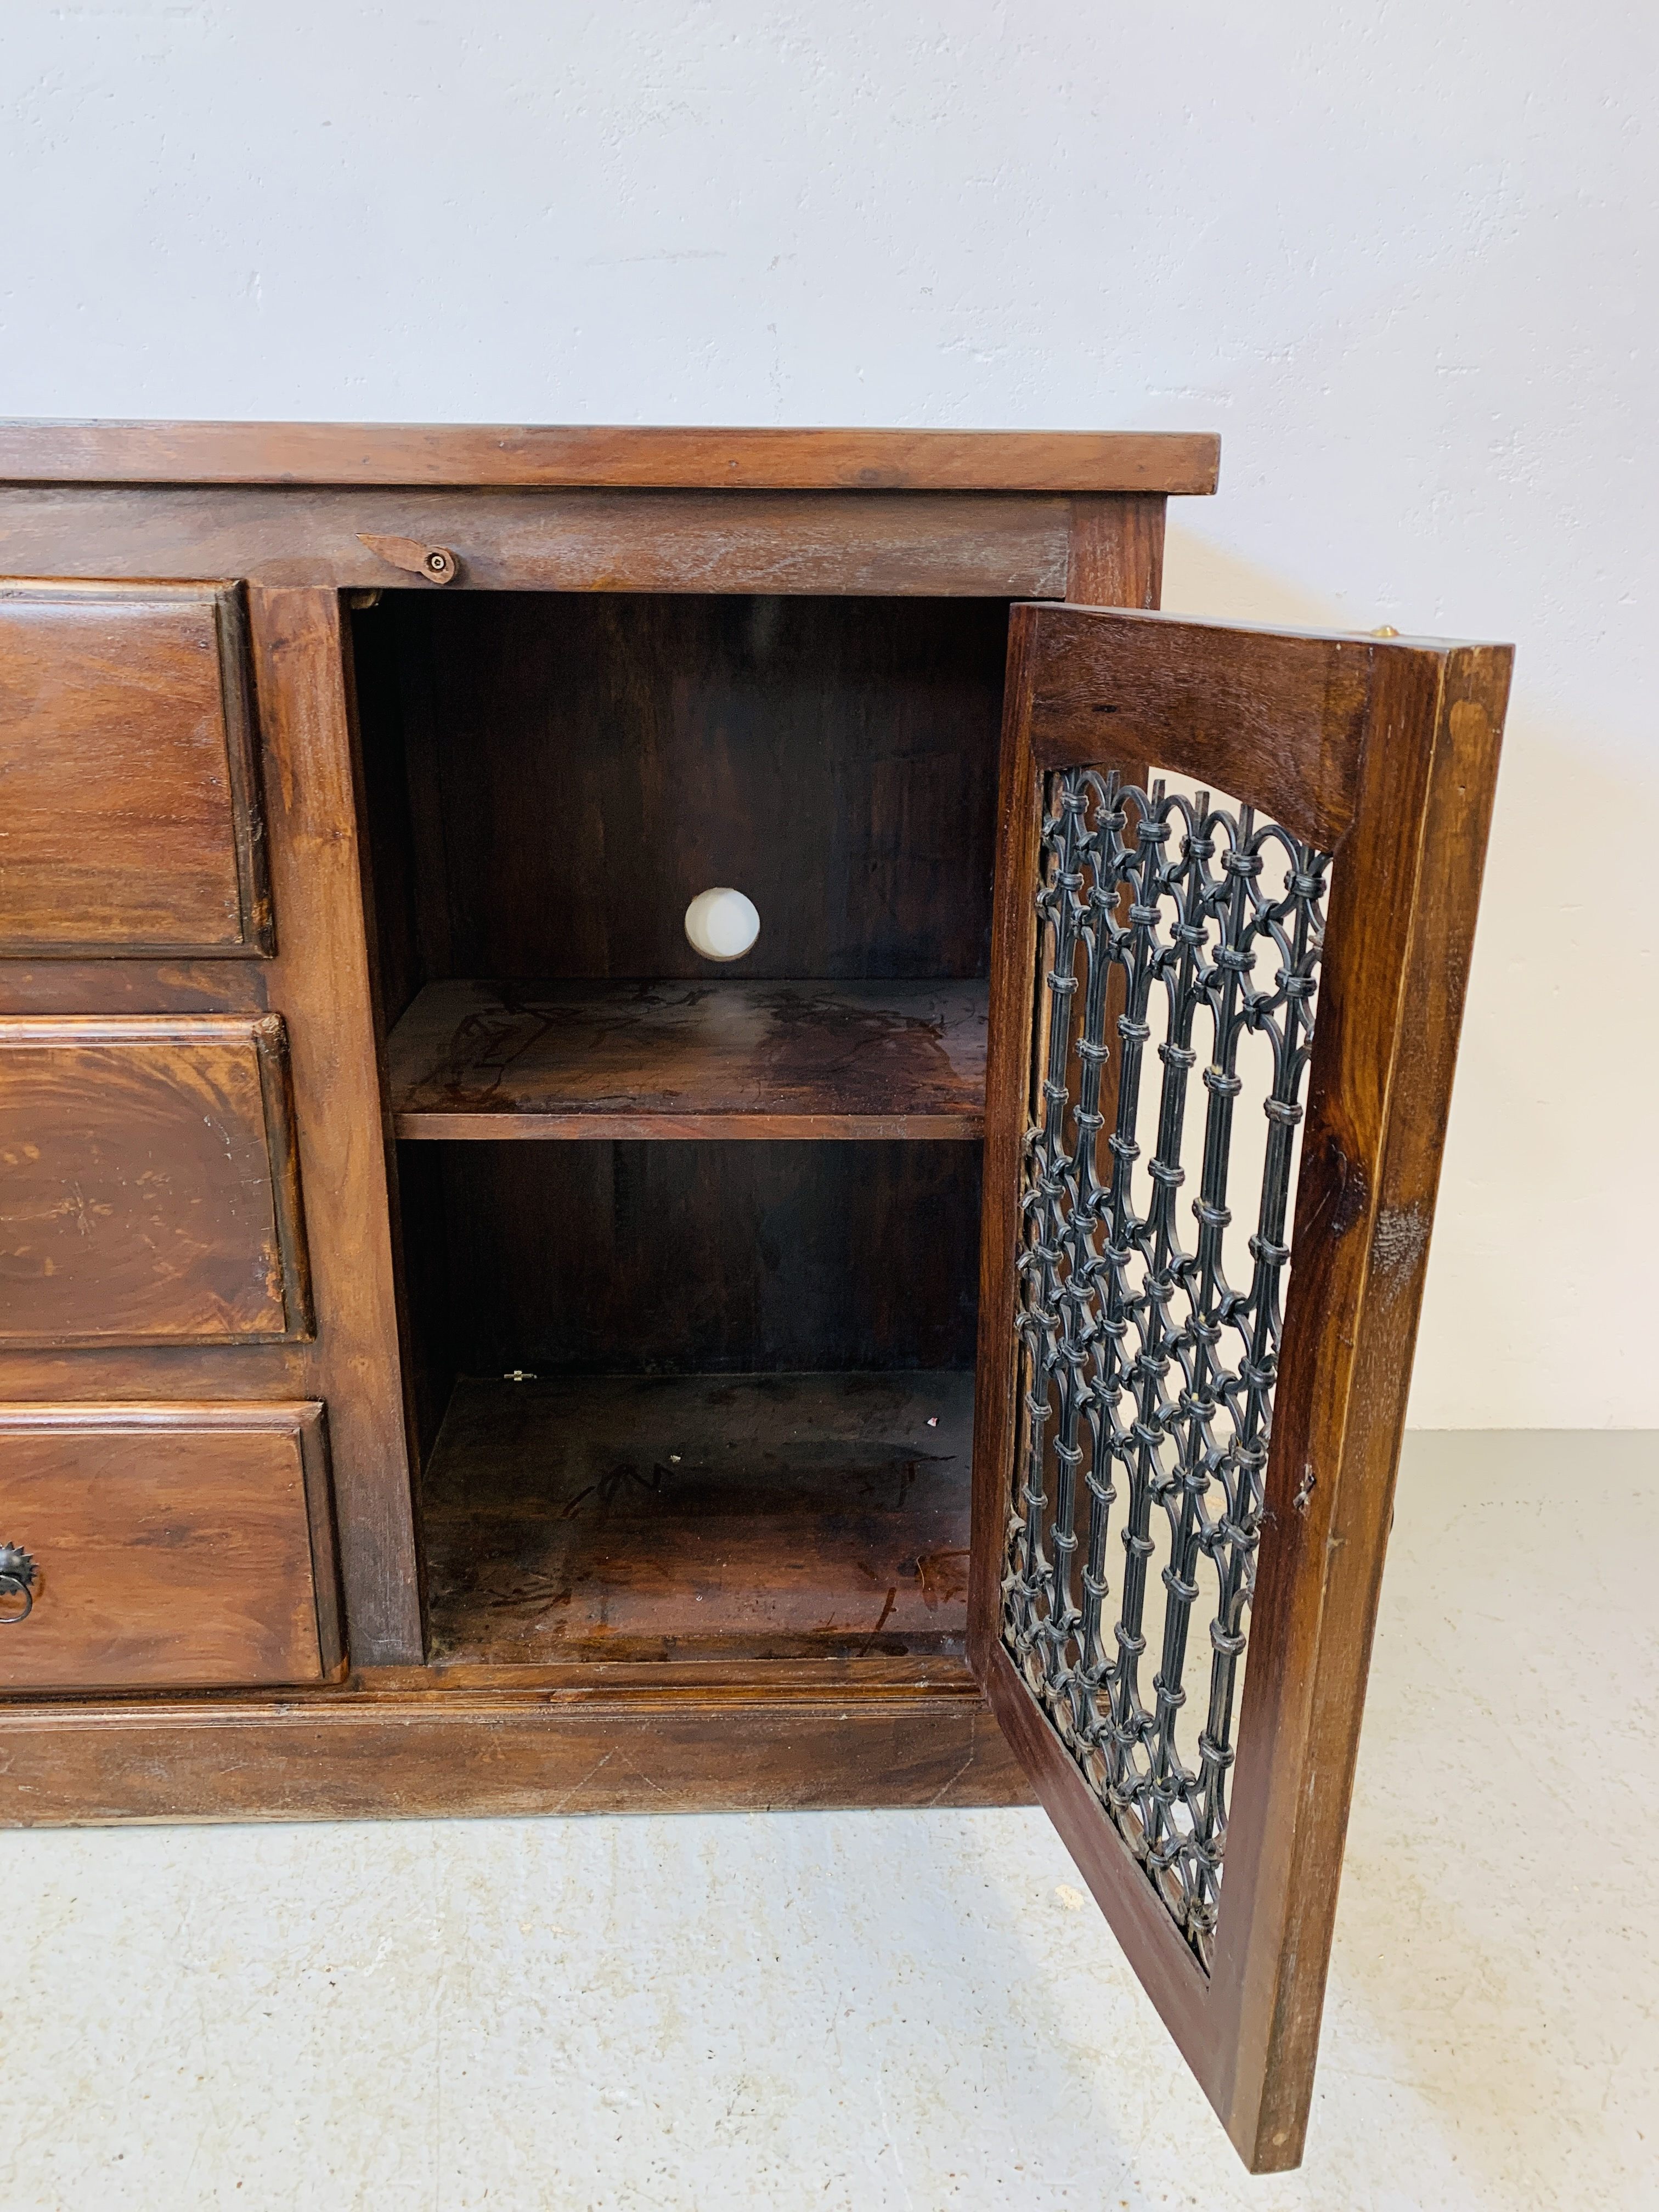 A RUSTIC HARDWOOD COUNTRY & EASTERN STYLE DRESSER BASE, - Image 9 of 9